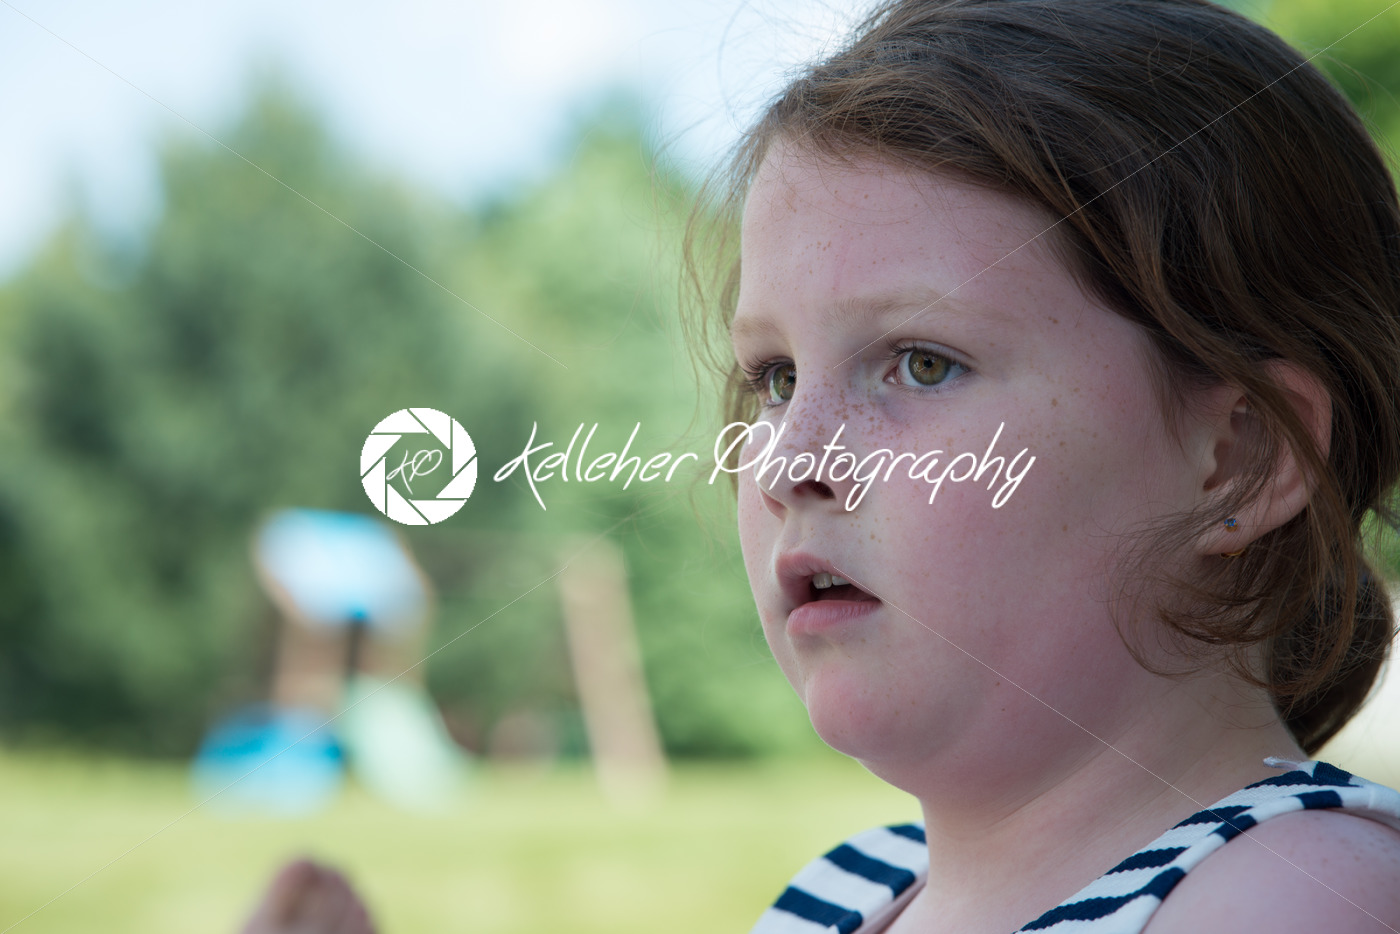 Close Portrait of Young Girl Looking Concerned Outside - Kelleher Photography Store